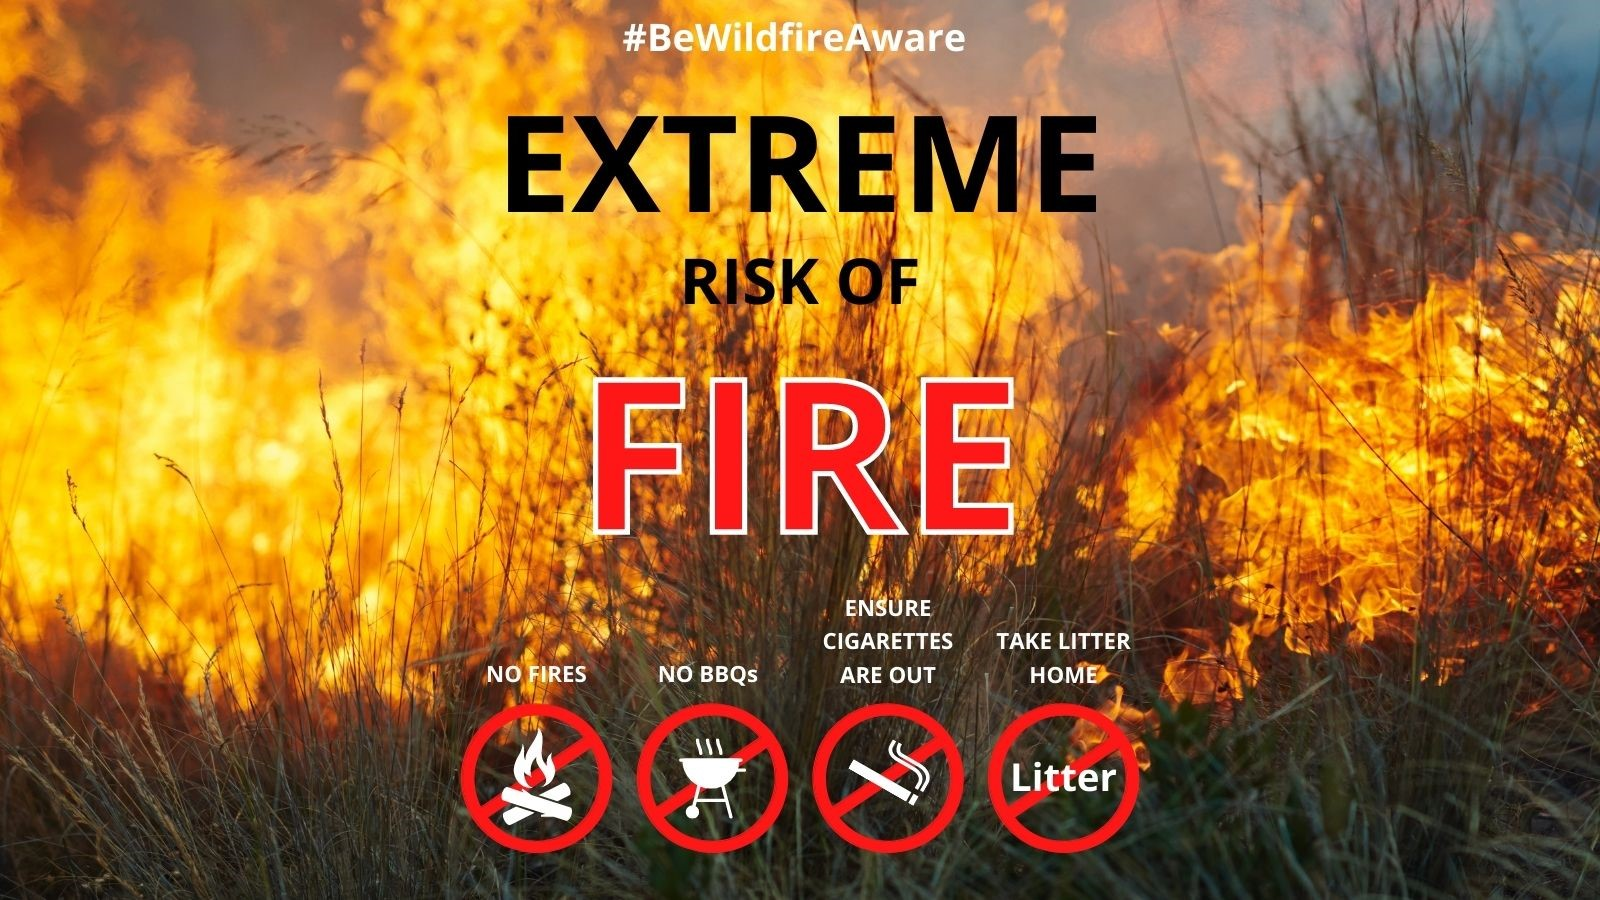 Warning About Heathland Fires From Thames Basin Heaths Partnerships